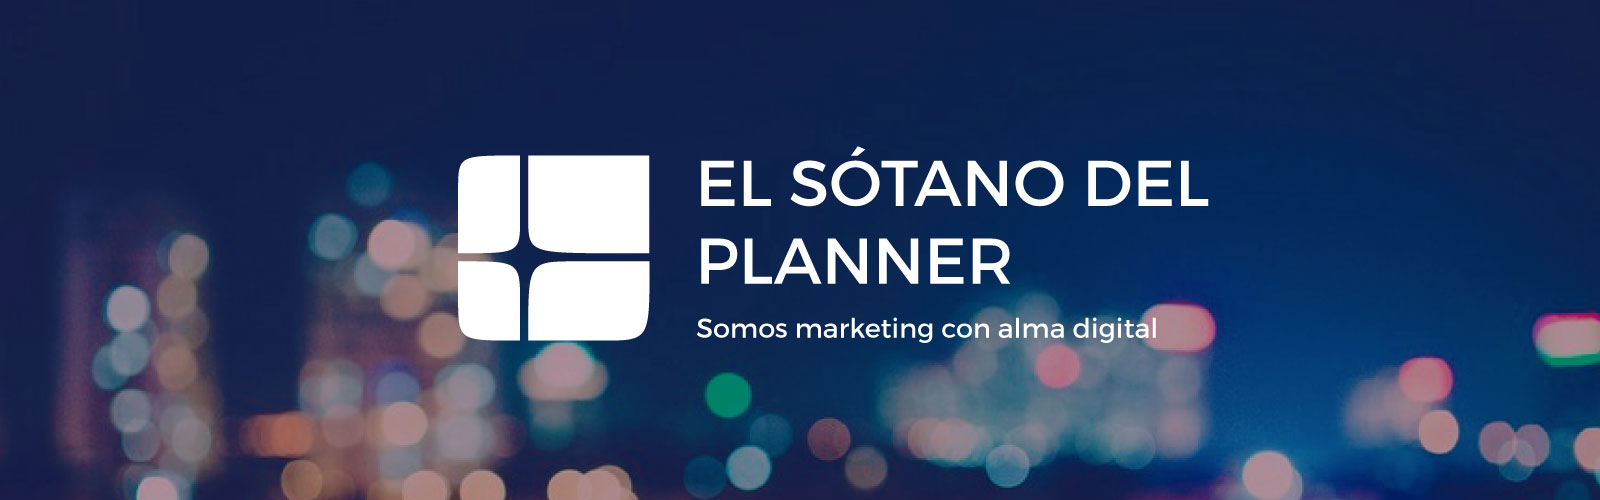 El Sótano del Planner